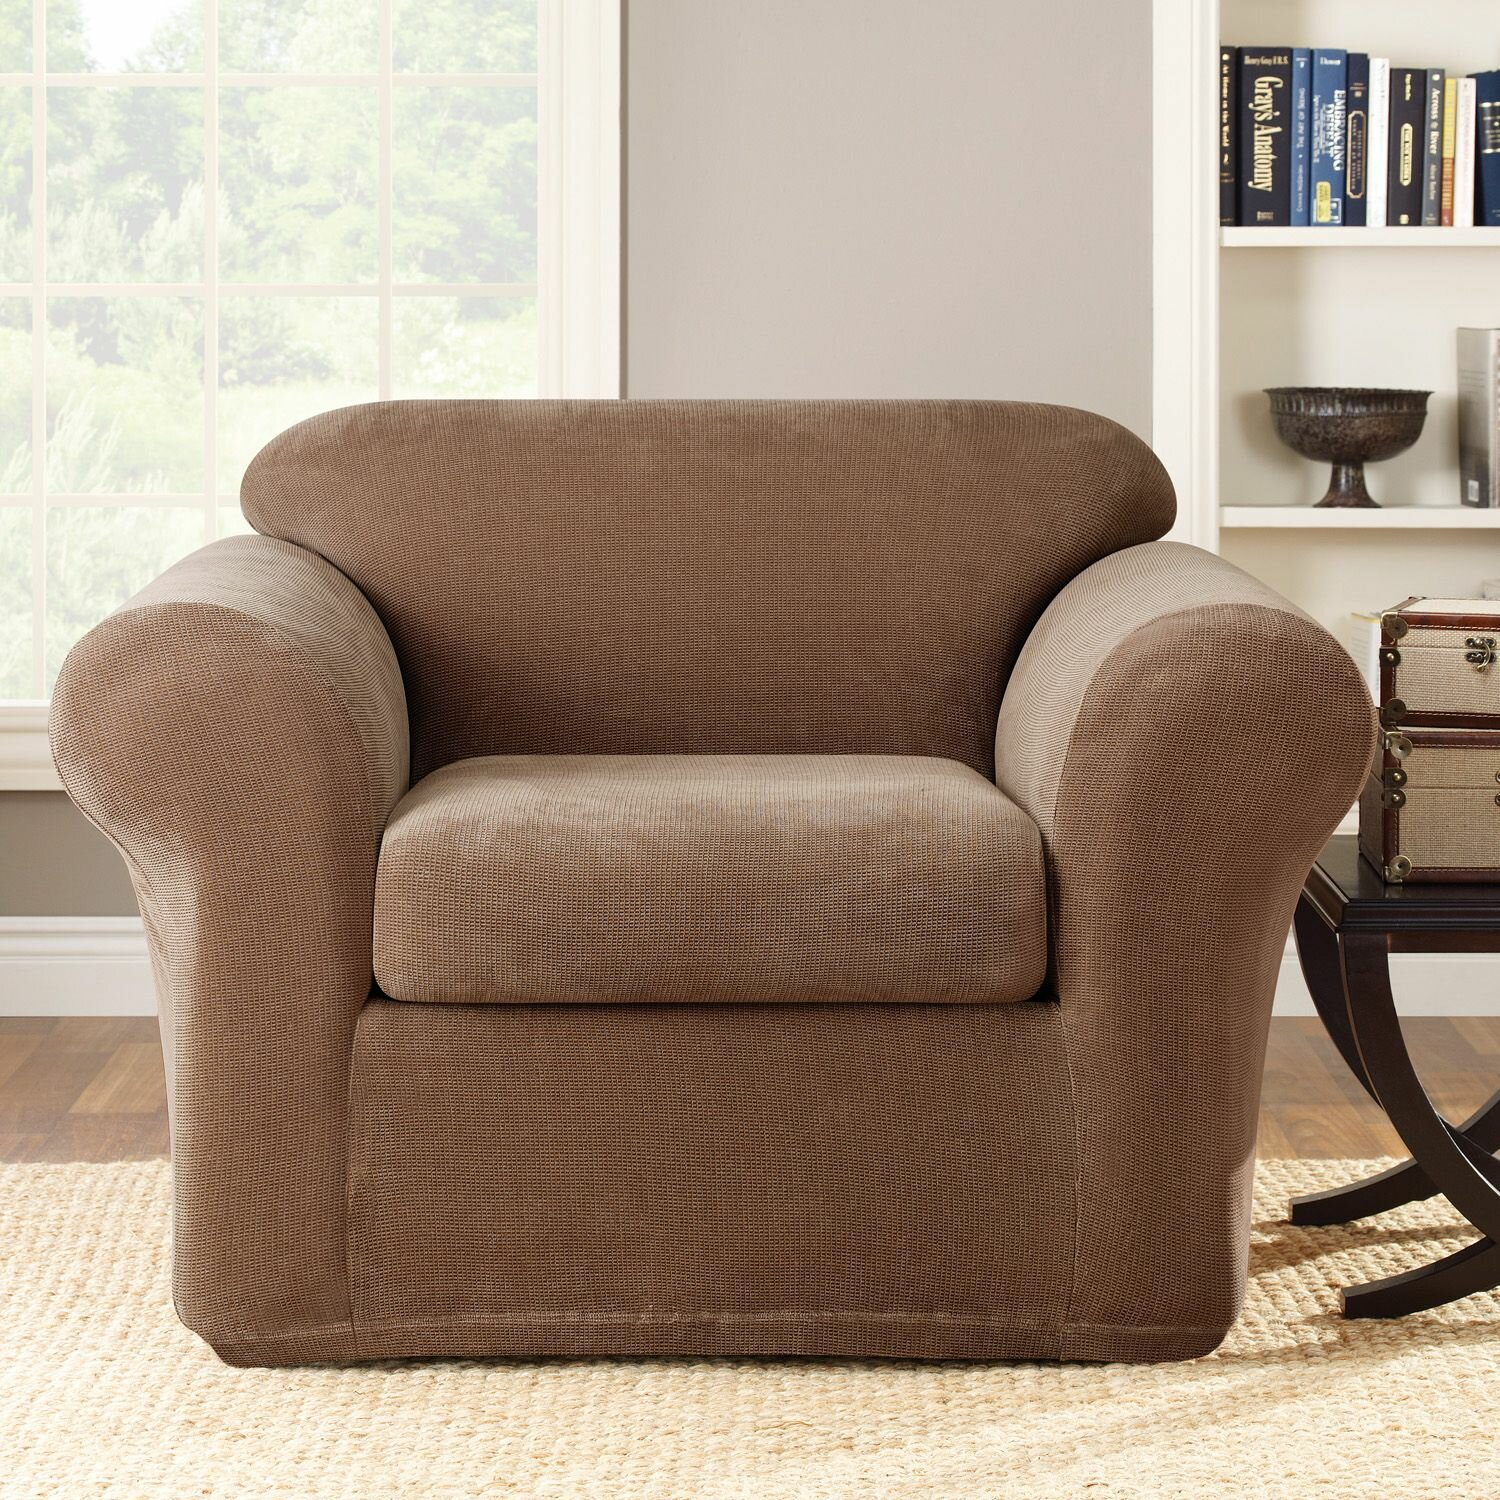 Sure Fit Stretch Metro 2-Piece Armchair Slipcover | eBay